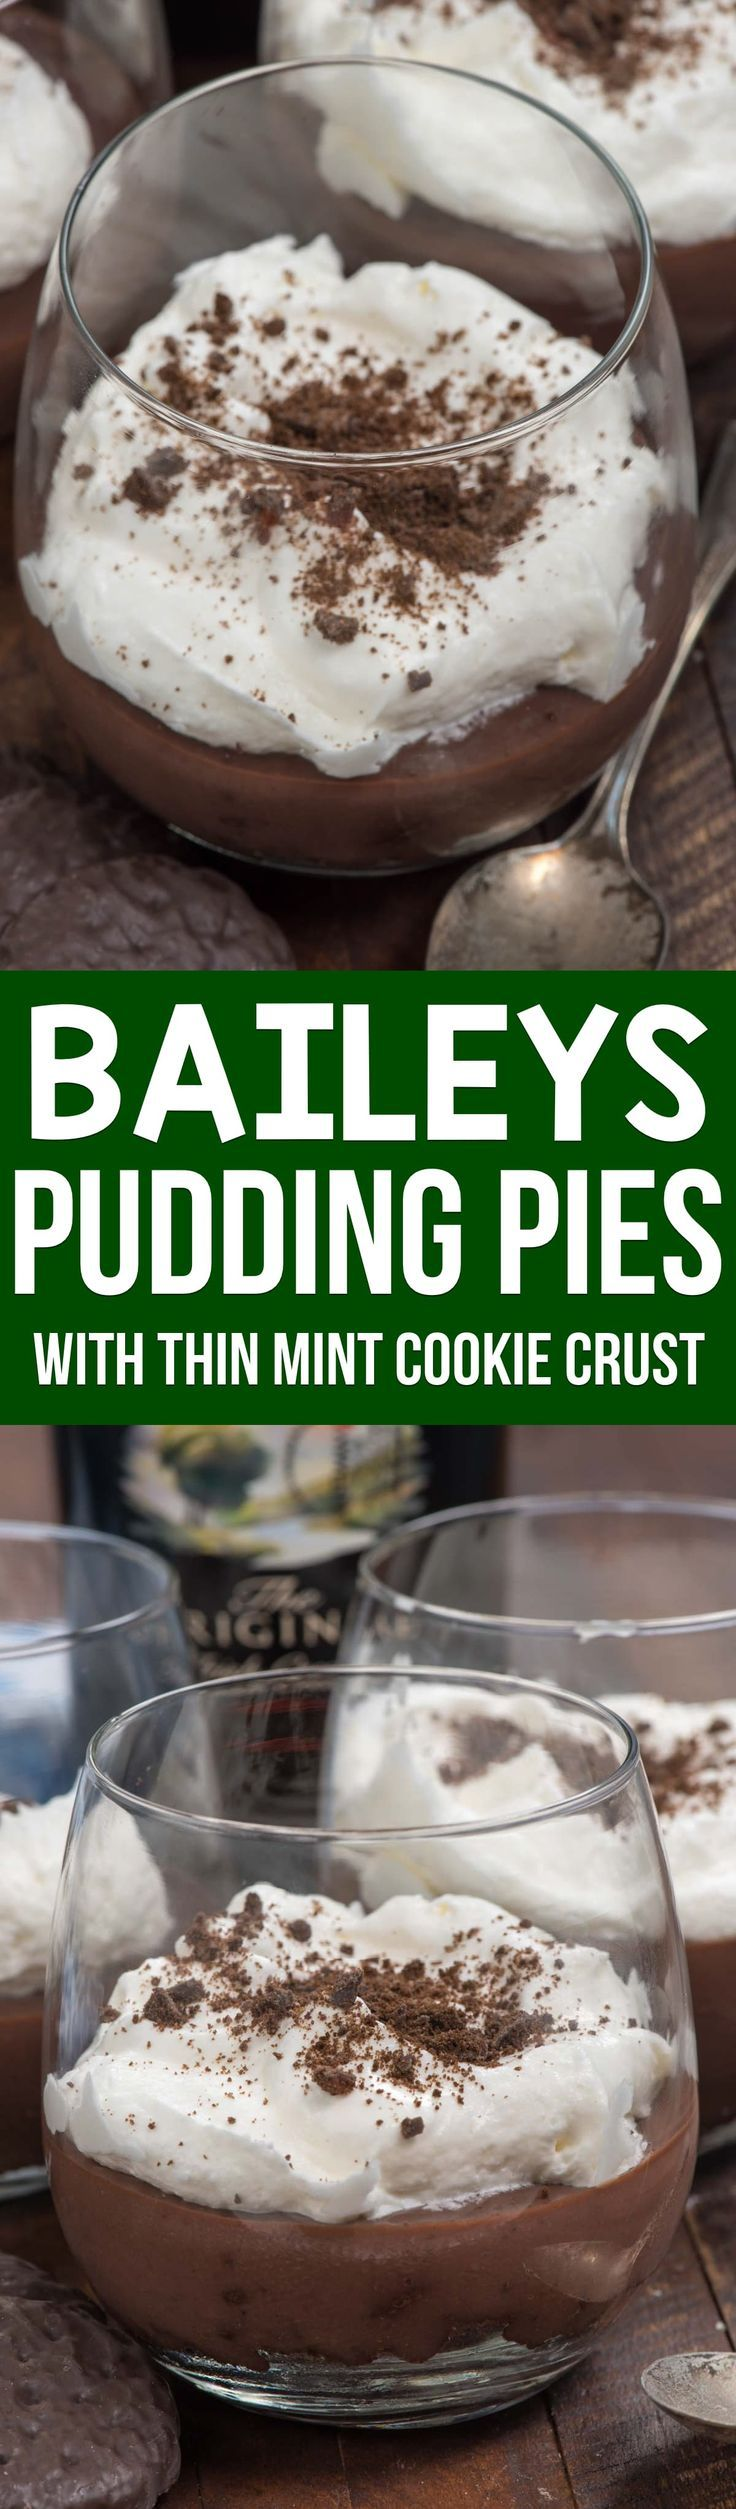 Baileys Pudding Pies are EASY to make using chocolate pudding mix and whipped cream! They have a THIN MINT COOKIE crust and taste so much like Baileys. via @crazyforcrust